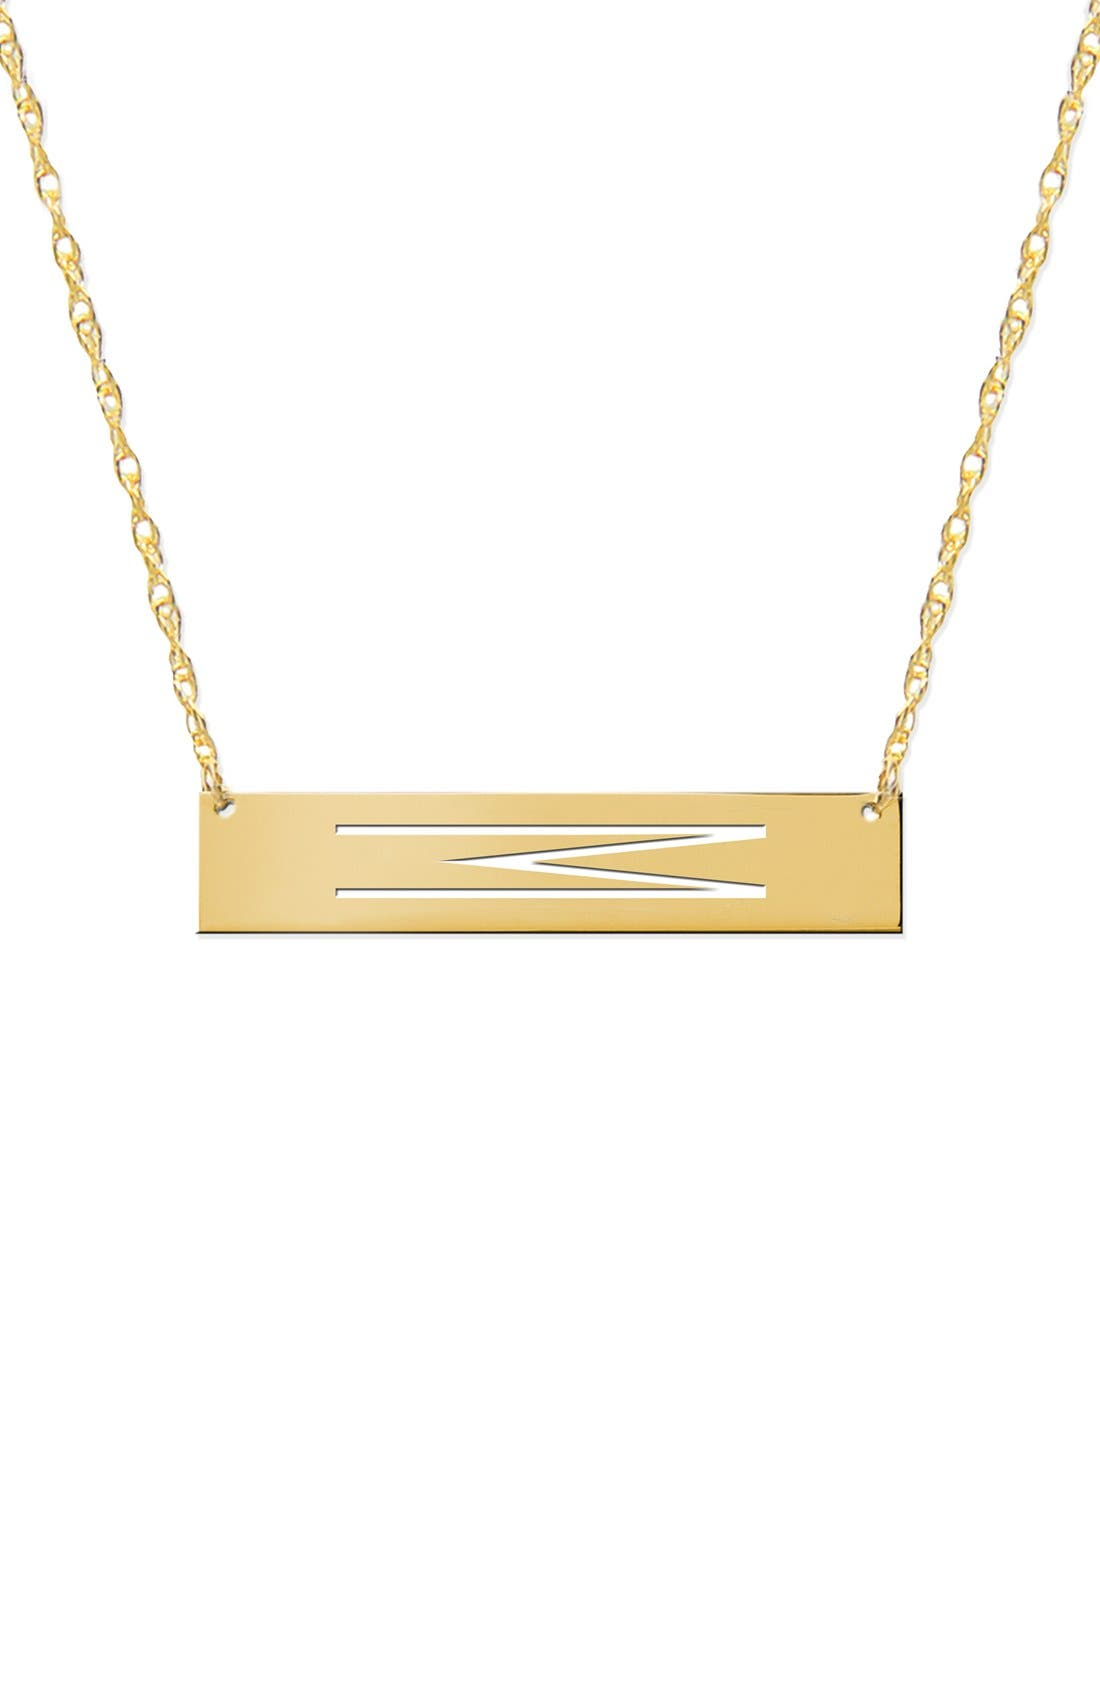 Jane Basch Designs Personalized Bar Pendant Necklace